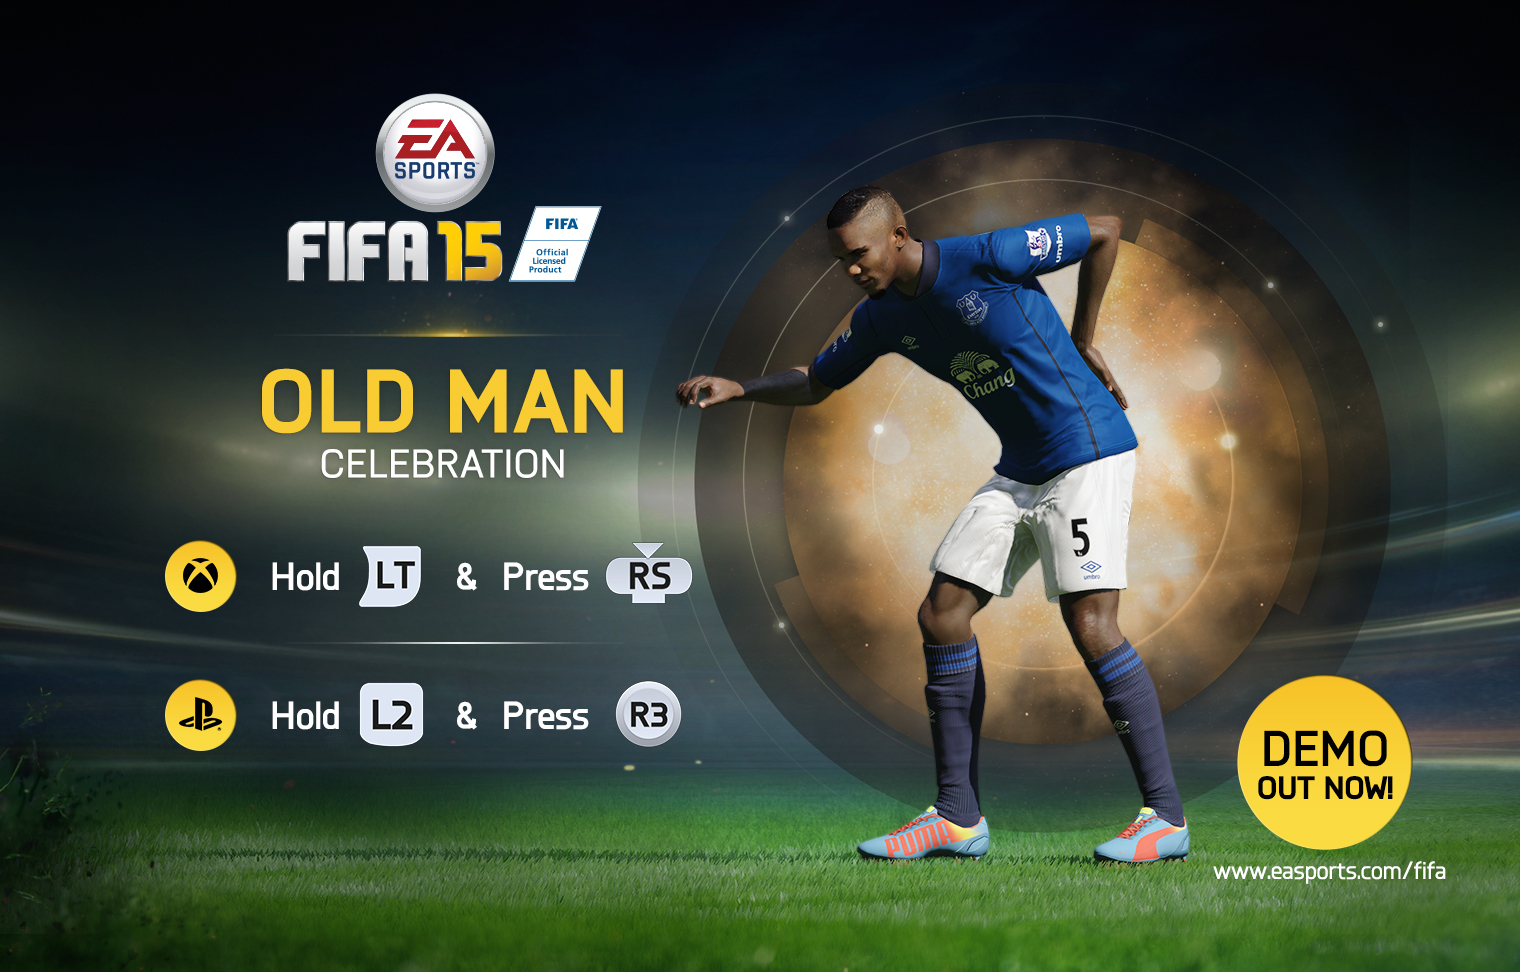 FIFA15_XboxOne_PS4_Celebrations_OldMan